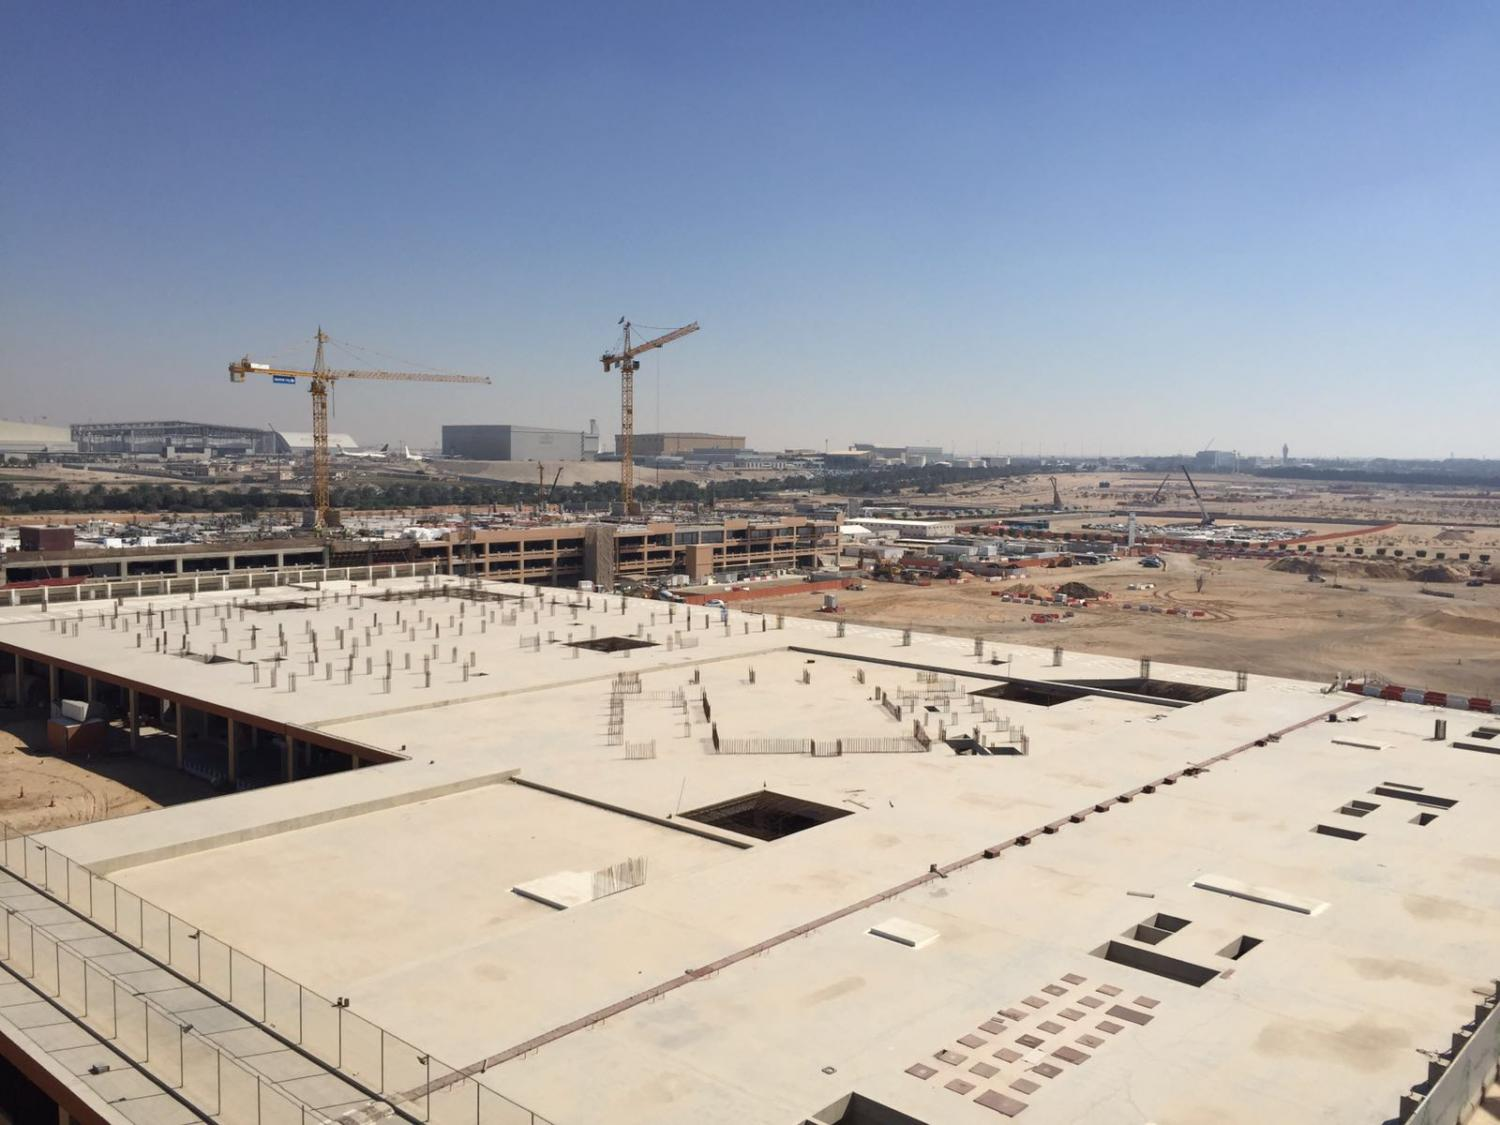 New-homes-and-offices-are-slated-for-Masdar-City.jpg